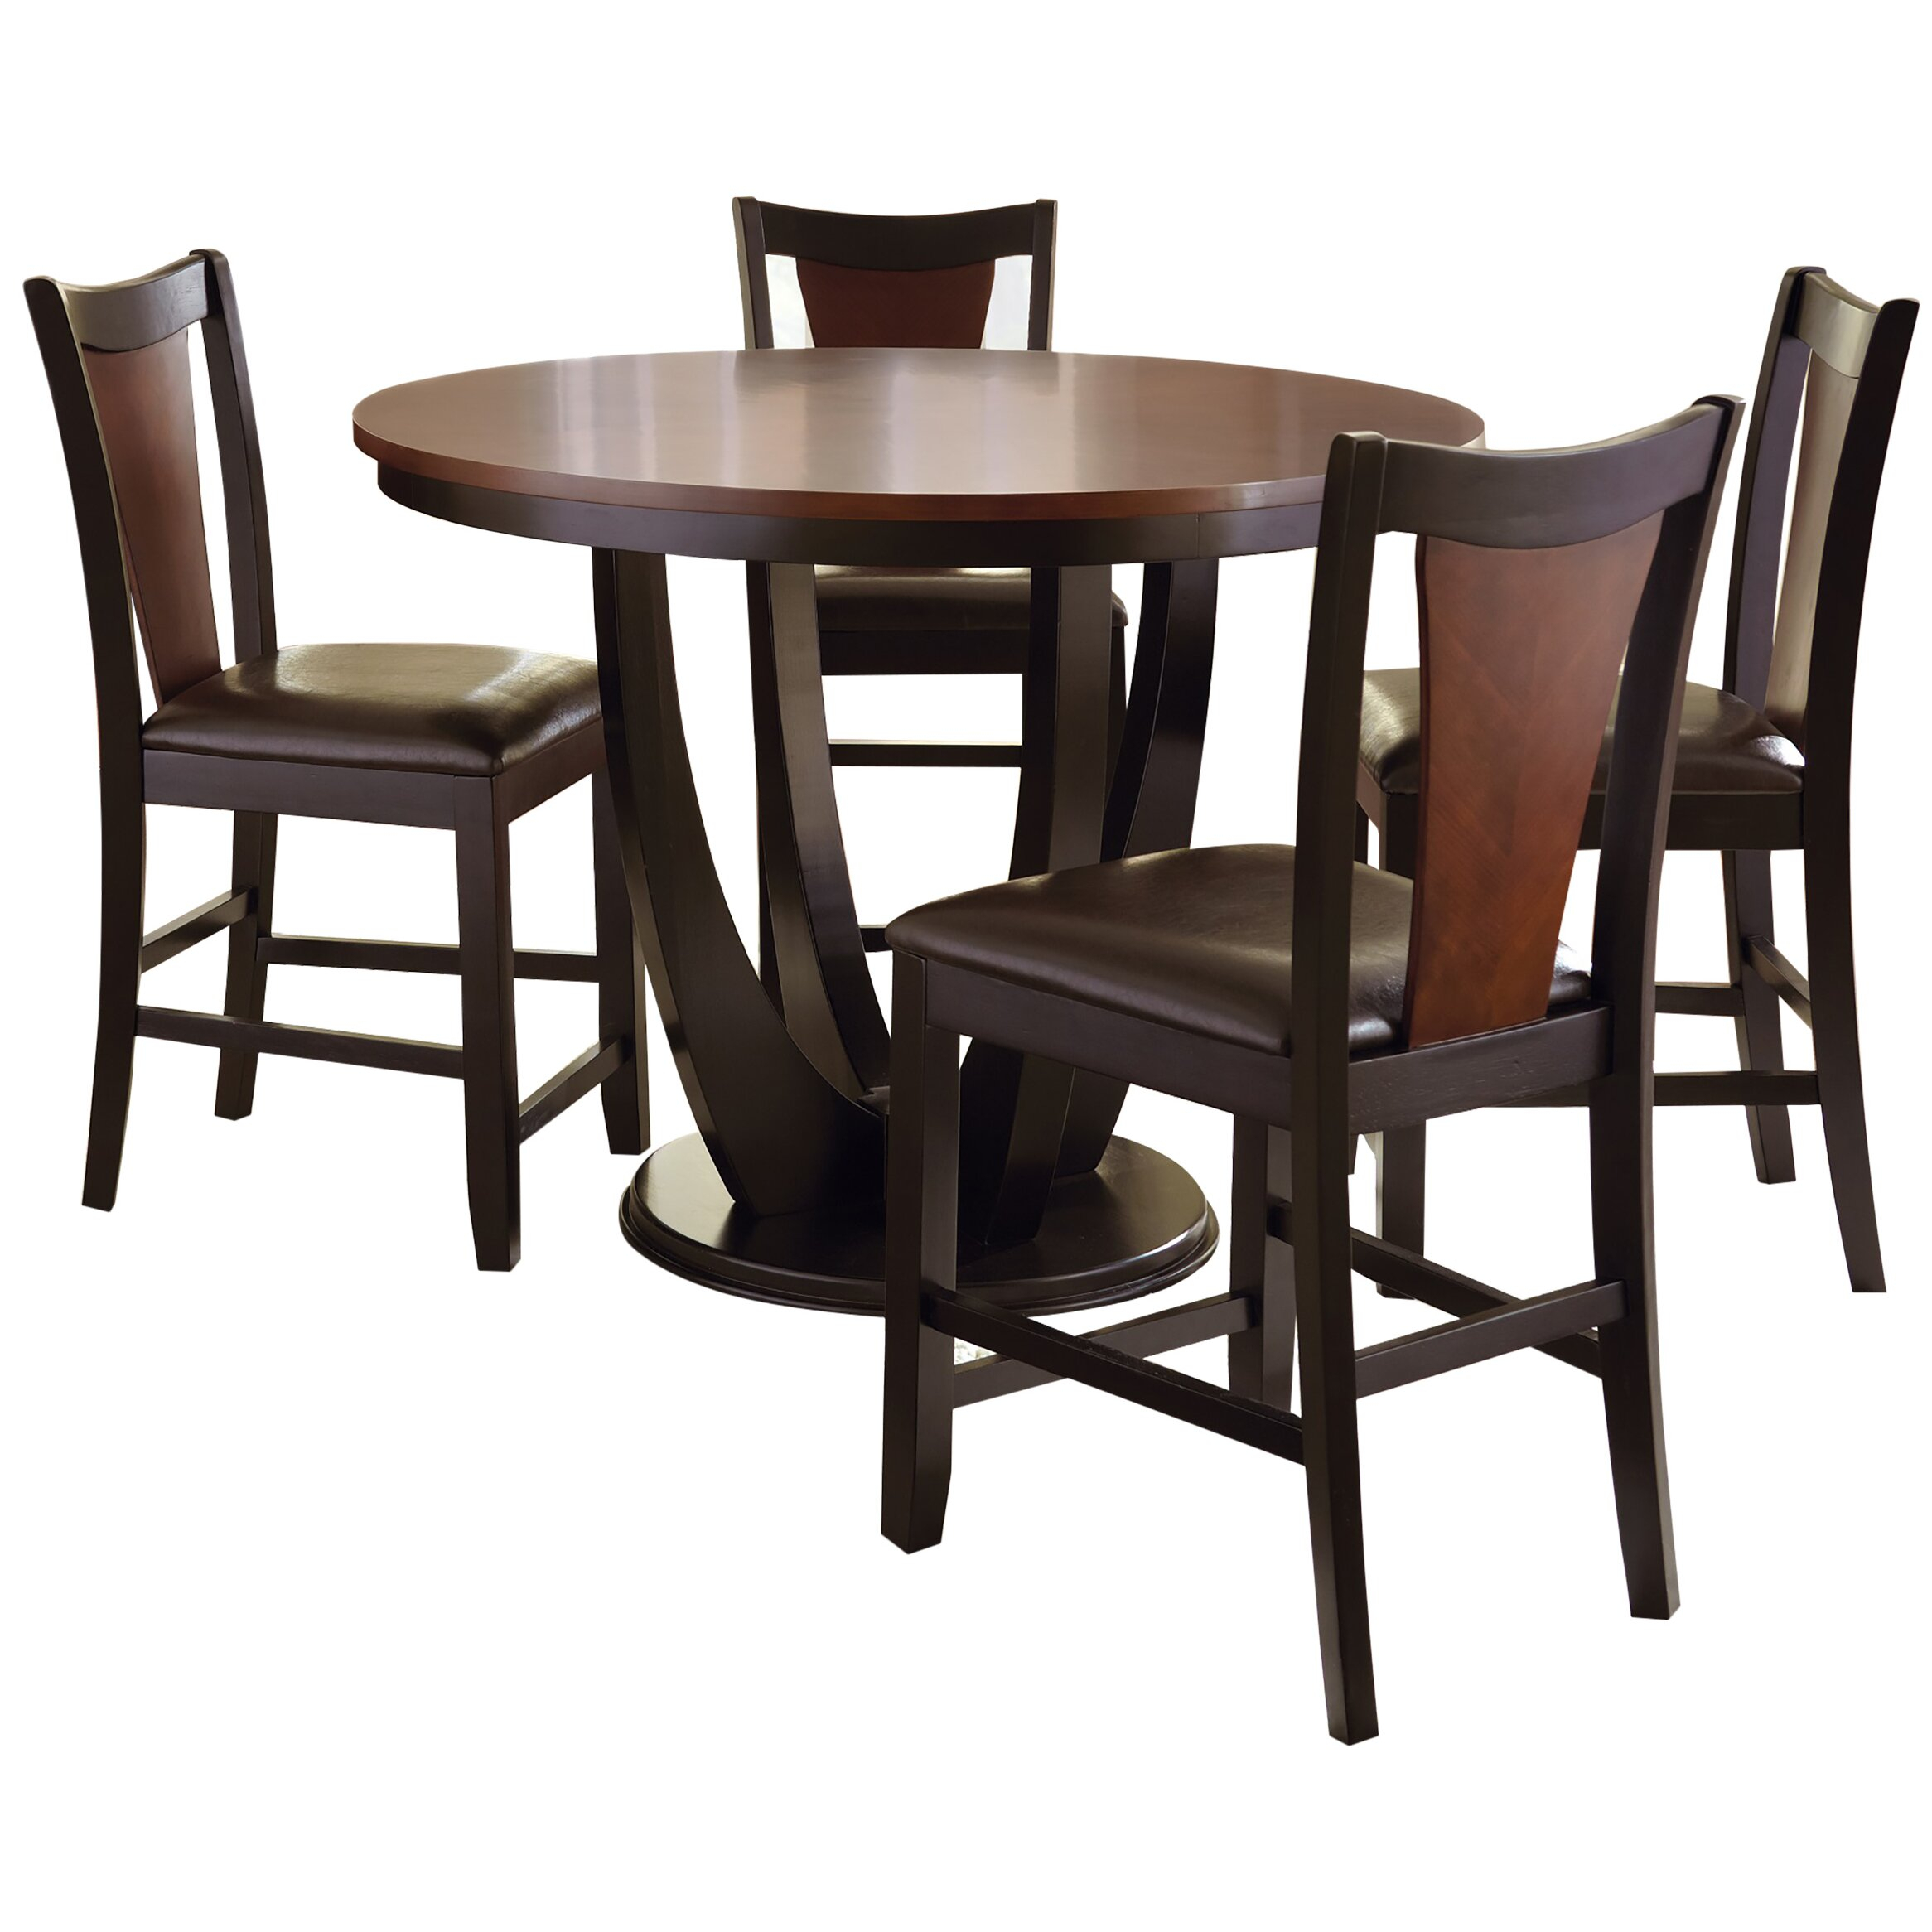 Counter Height Dining Table Base | Wayfair In Most Current Counter Height Pedestal Dining Tables (View 15 of 15)